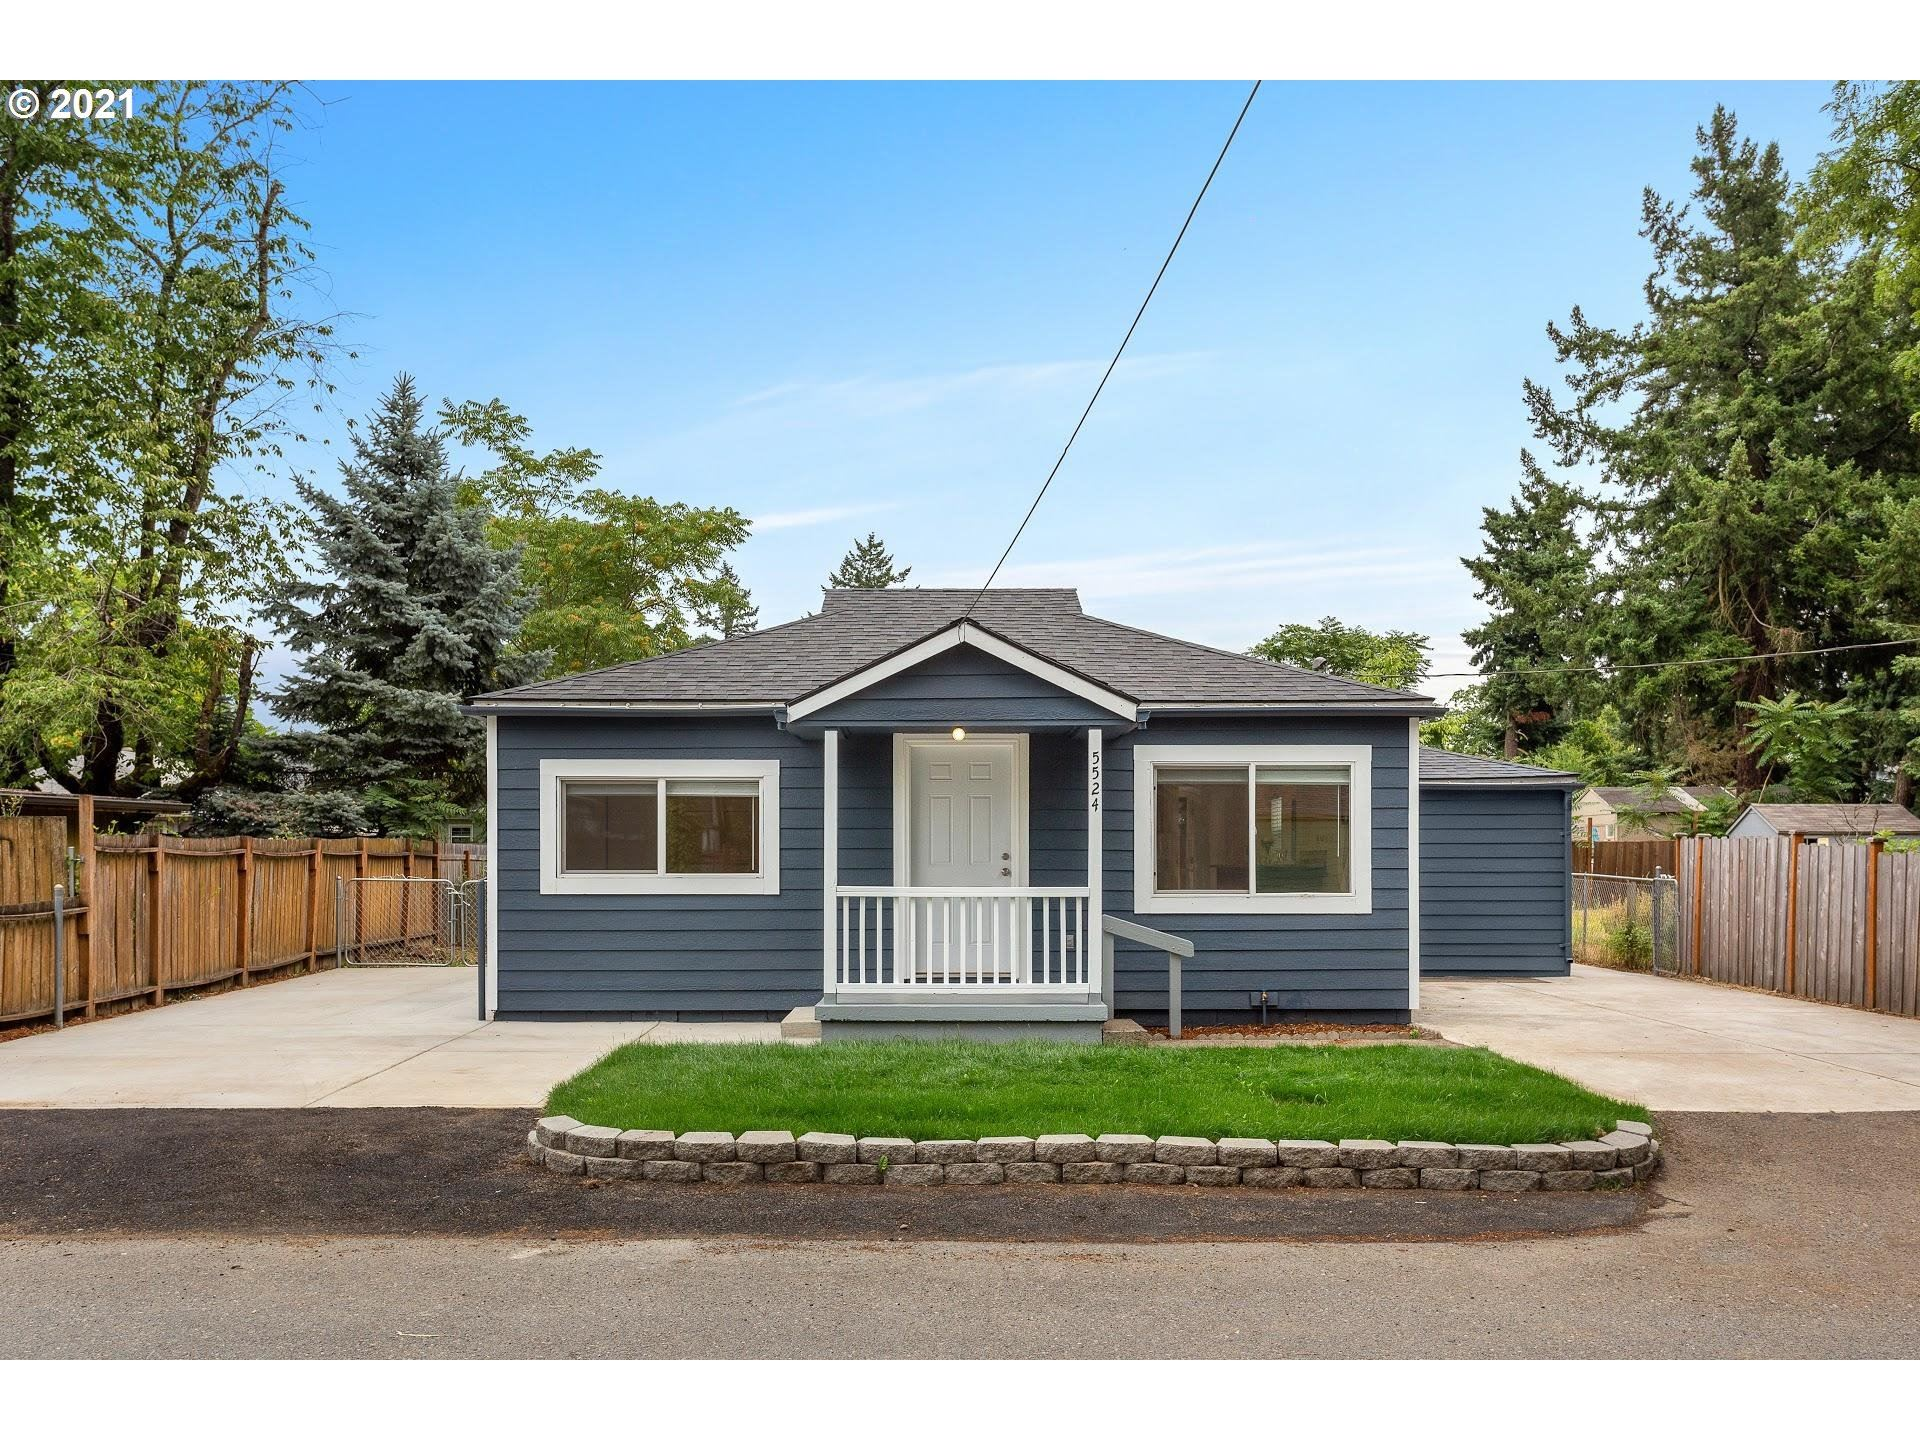 5524 SE 115TH AVE, Portland, OR 97266 - MLS#: 21071439